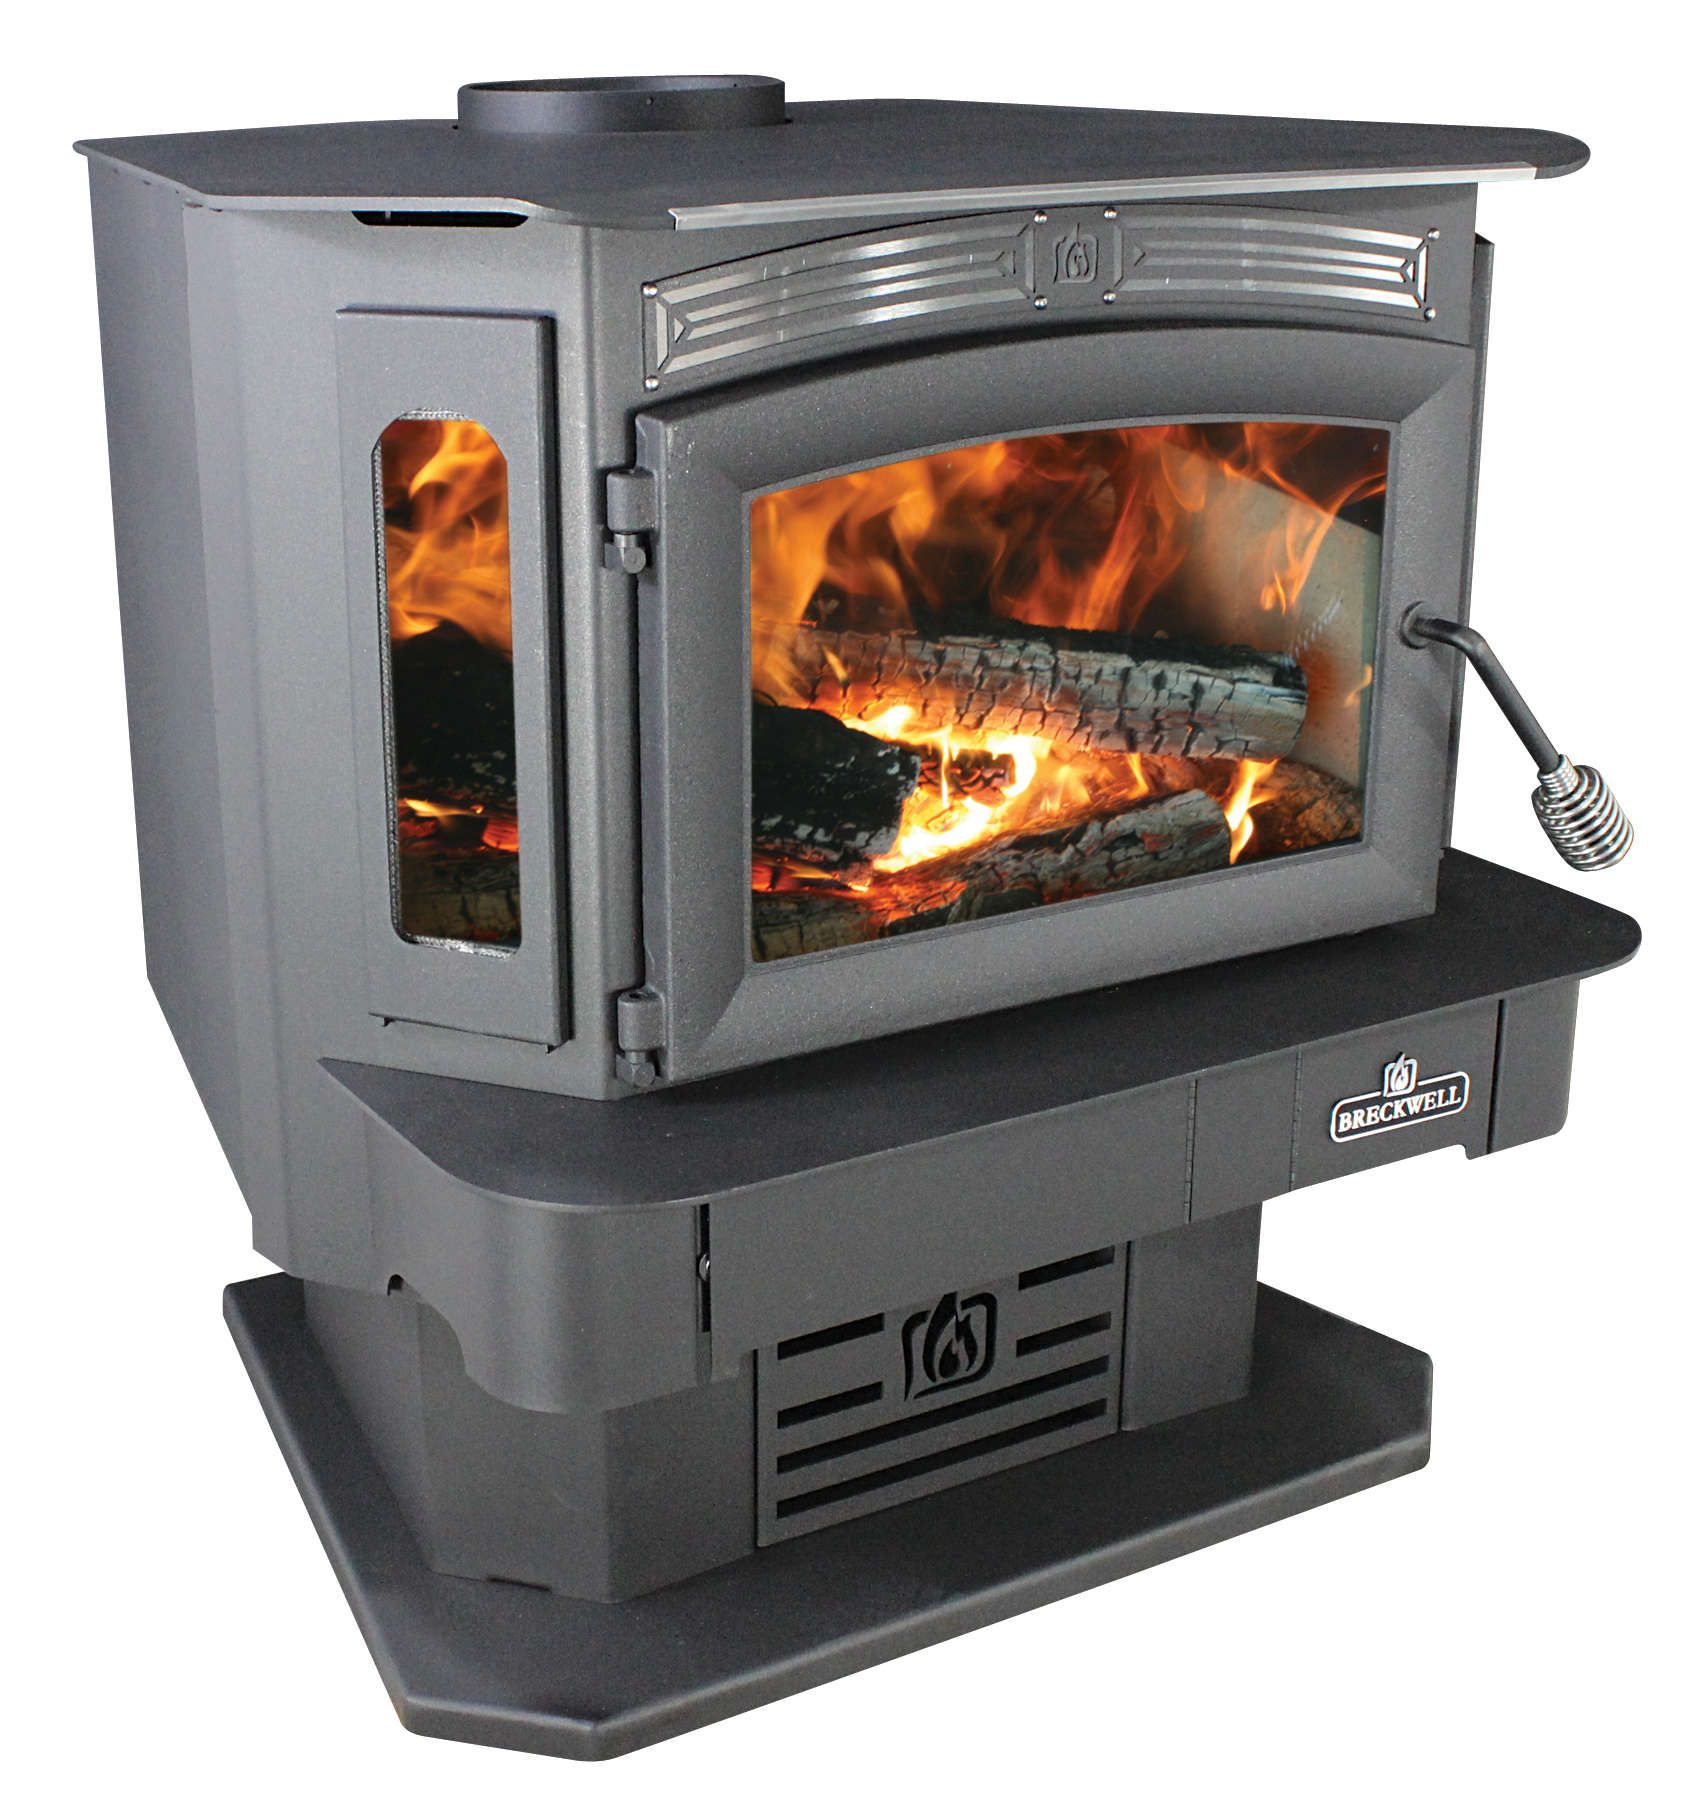 SW940P angle left wood burning stove repair & replacement parts online buck stove clayton wood furnace wiring diagram at readyjetset.co